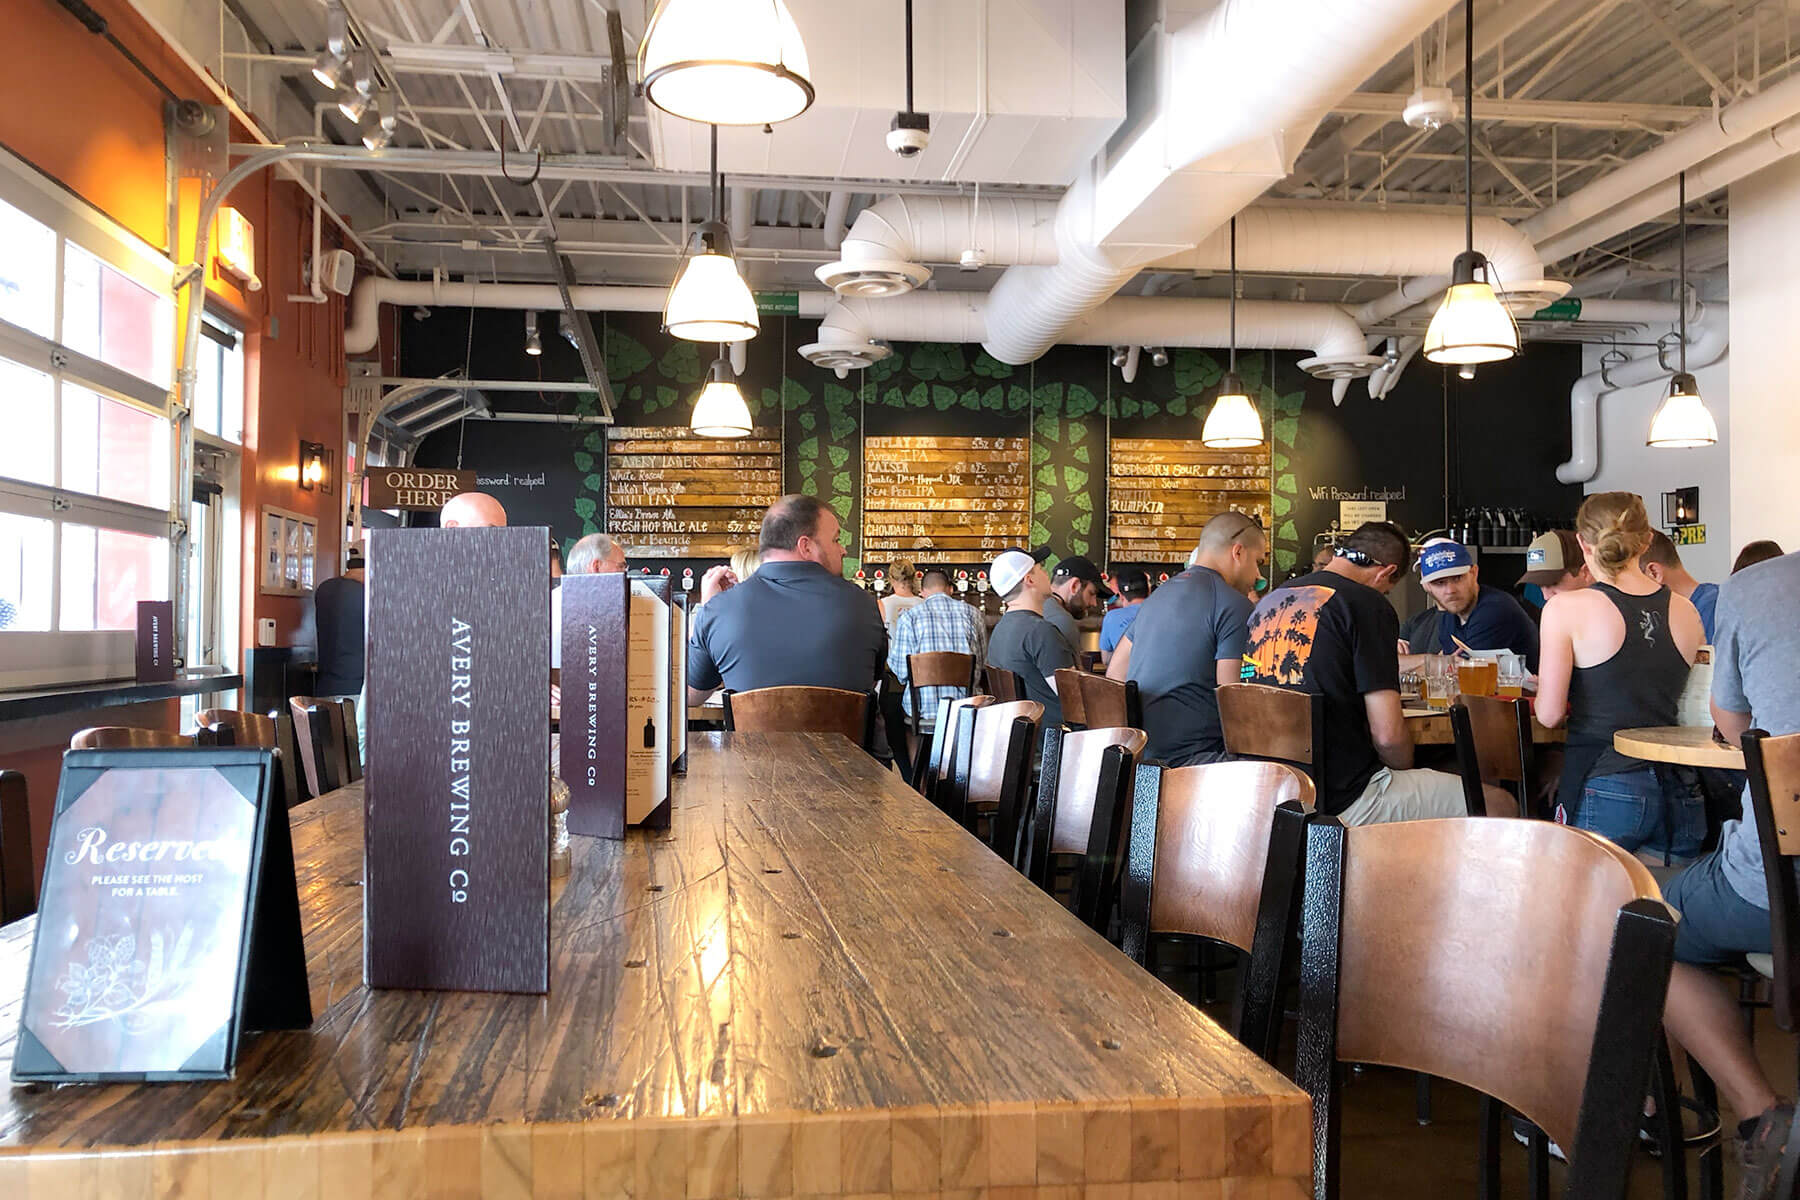 Inside the Avery Brewing Co. taproom in Boulder, Colorado